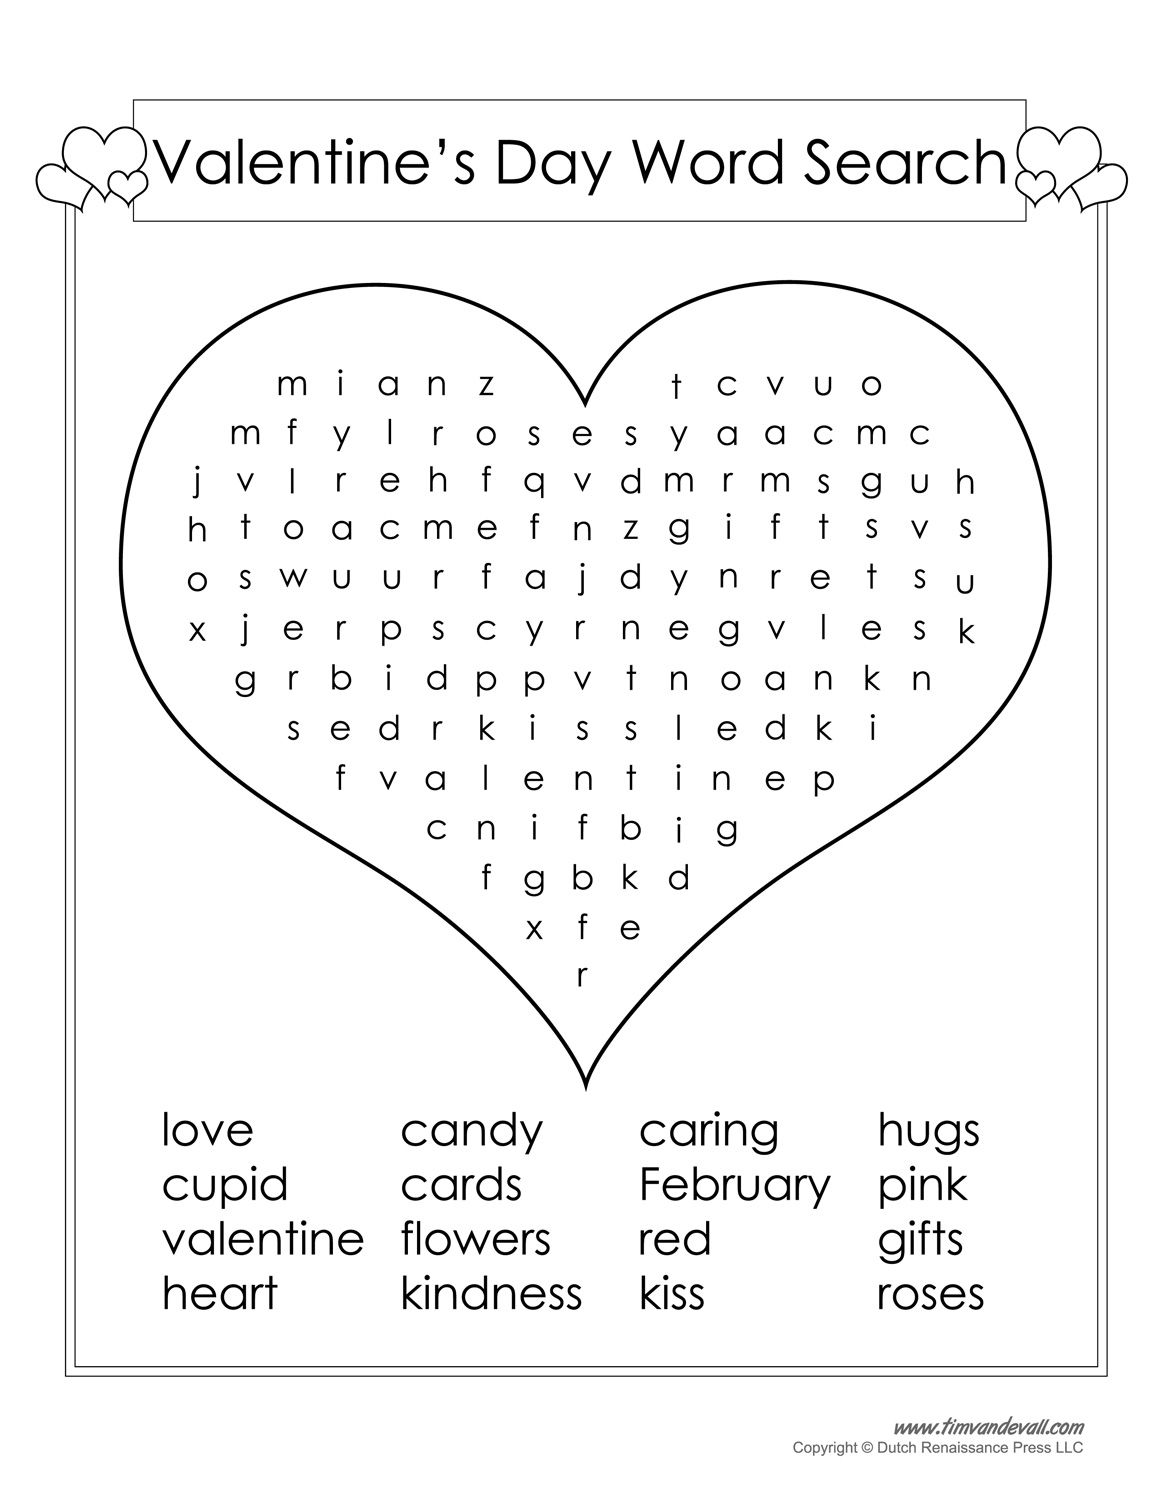 Valentines Day Word Search Printable